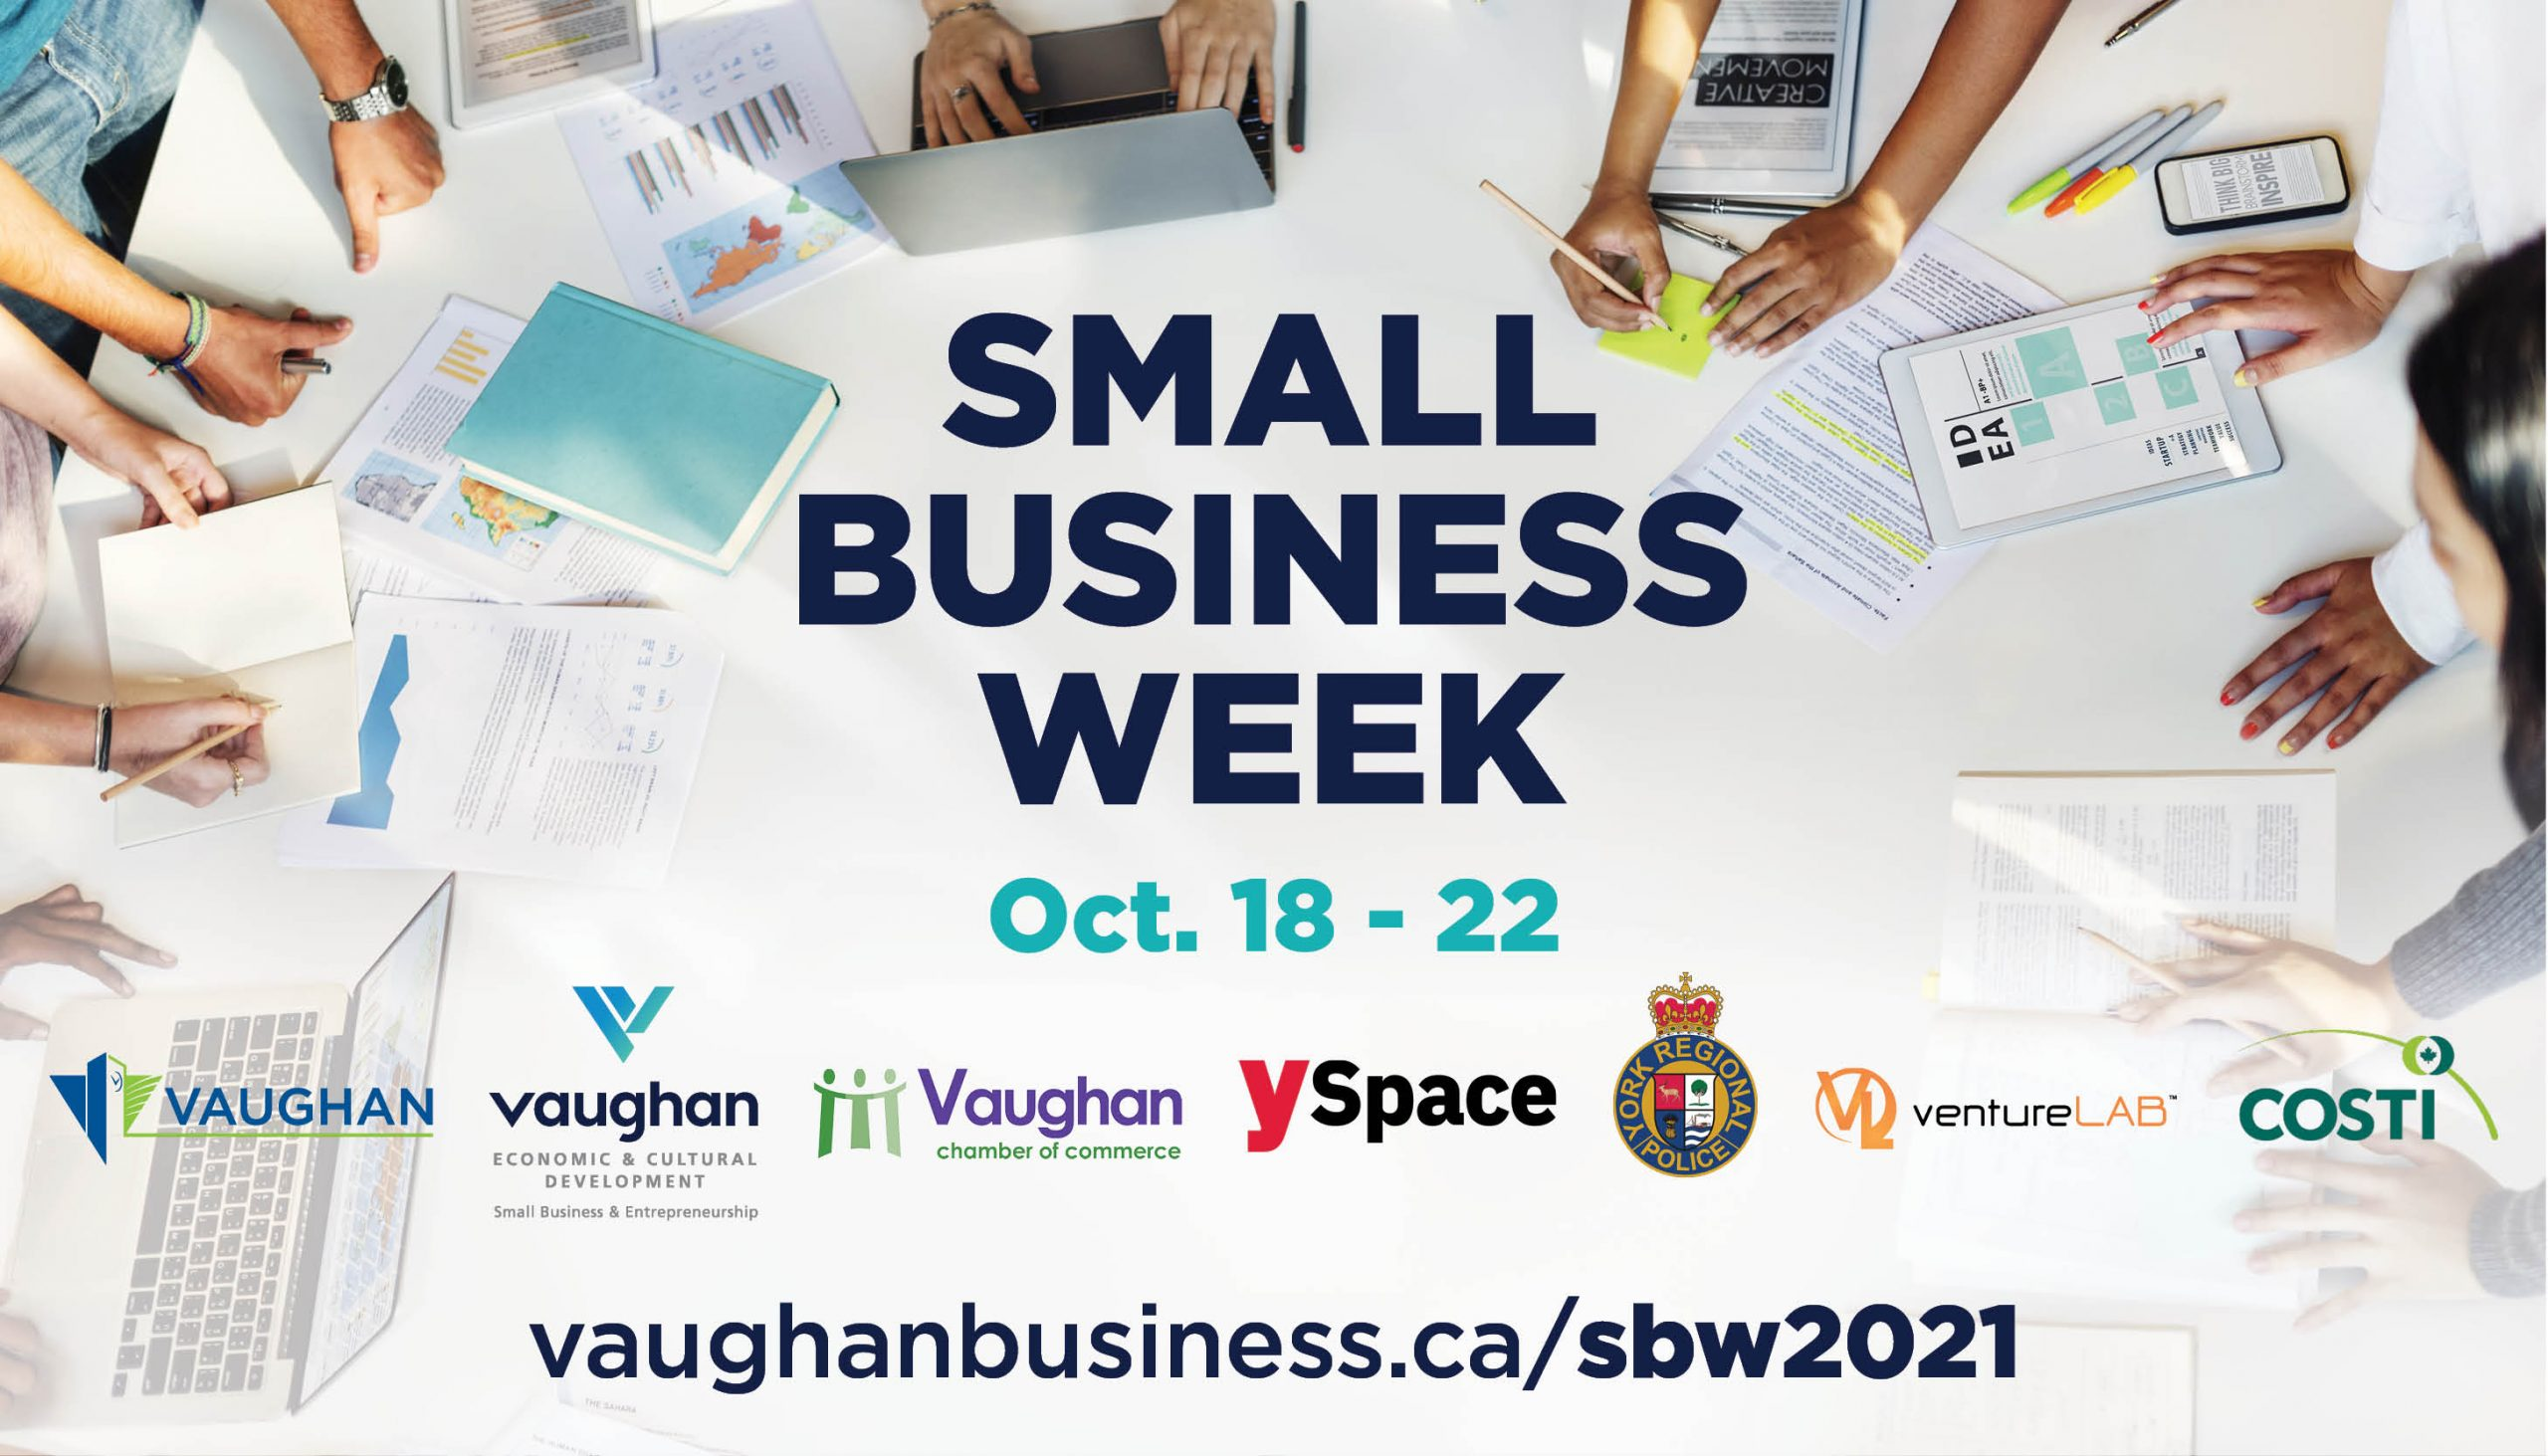 Small Business Week 2021